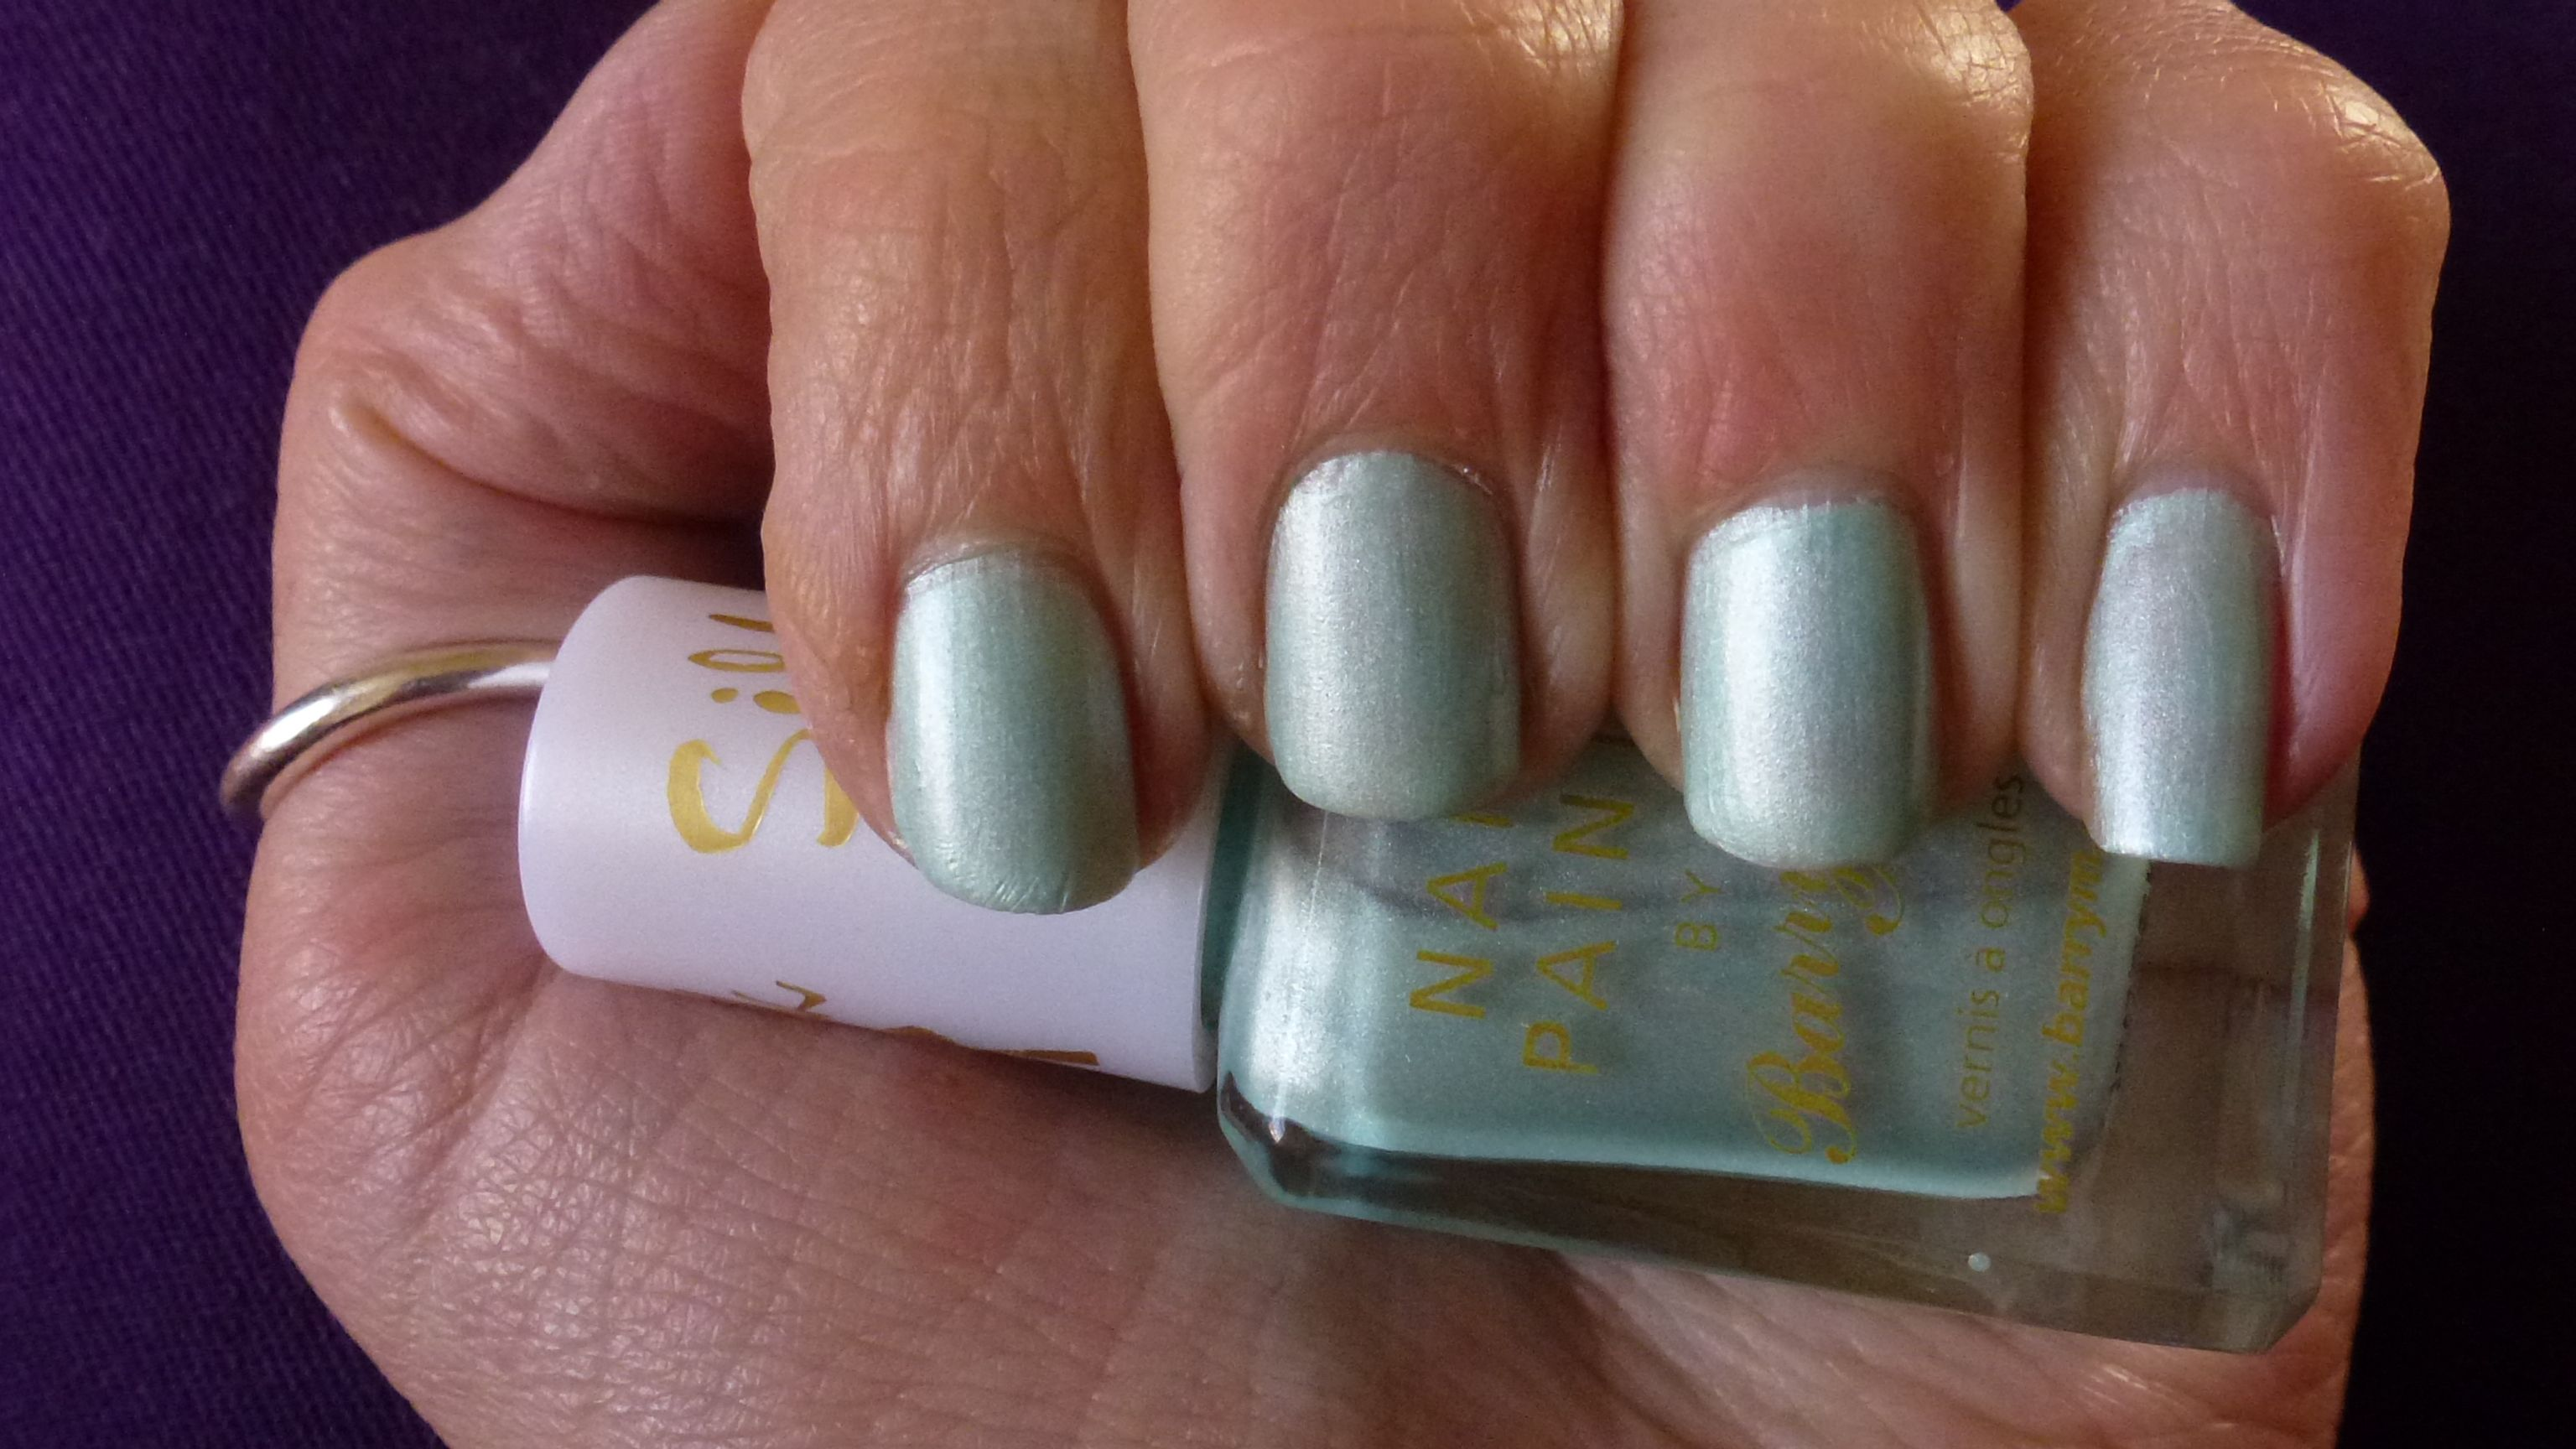 Barry M Silk effect Nail Paint in Meadow. For review click on piccy.